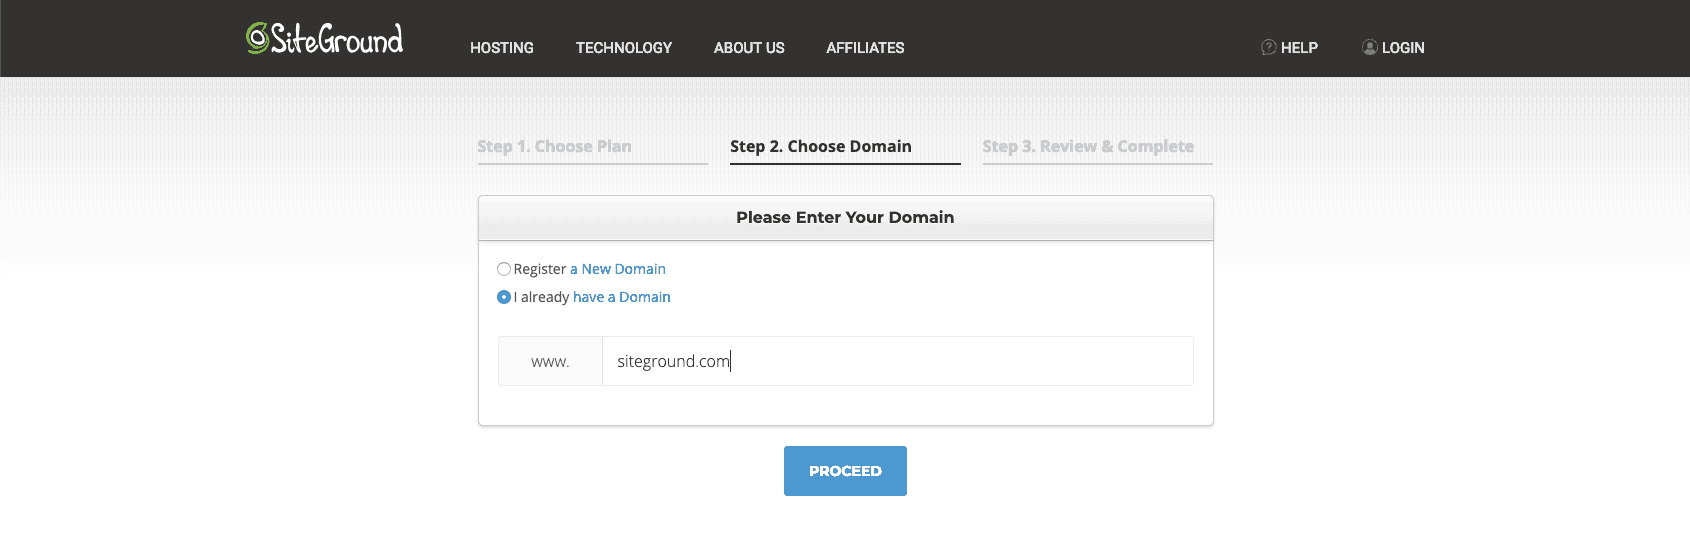 SiteGround web hosting step 2 | kimschob.com